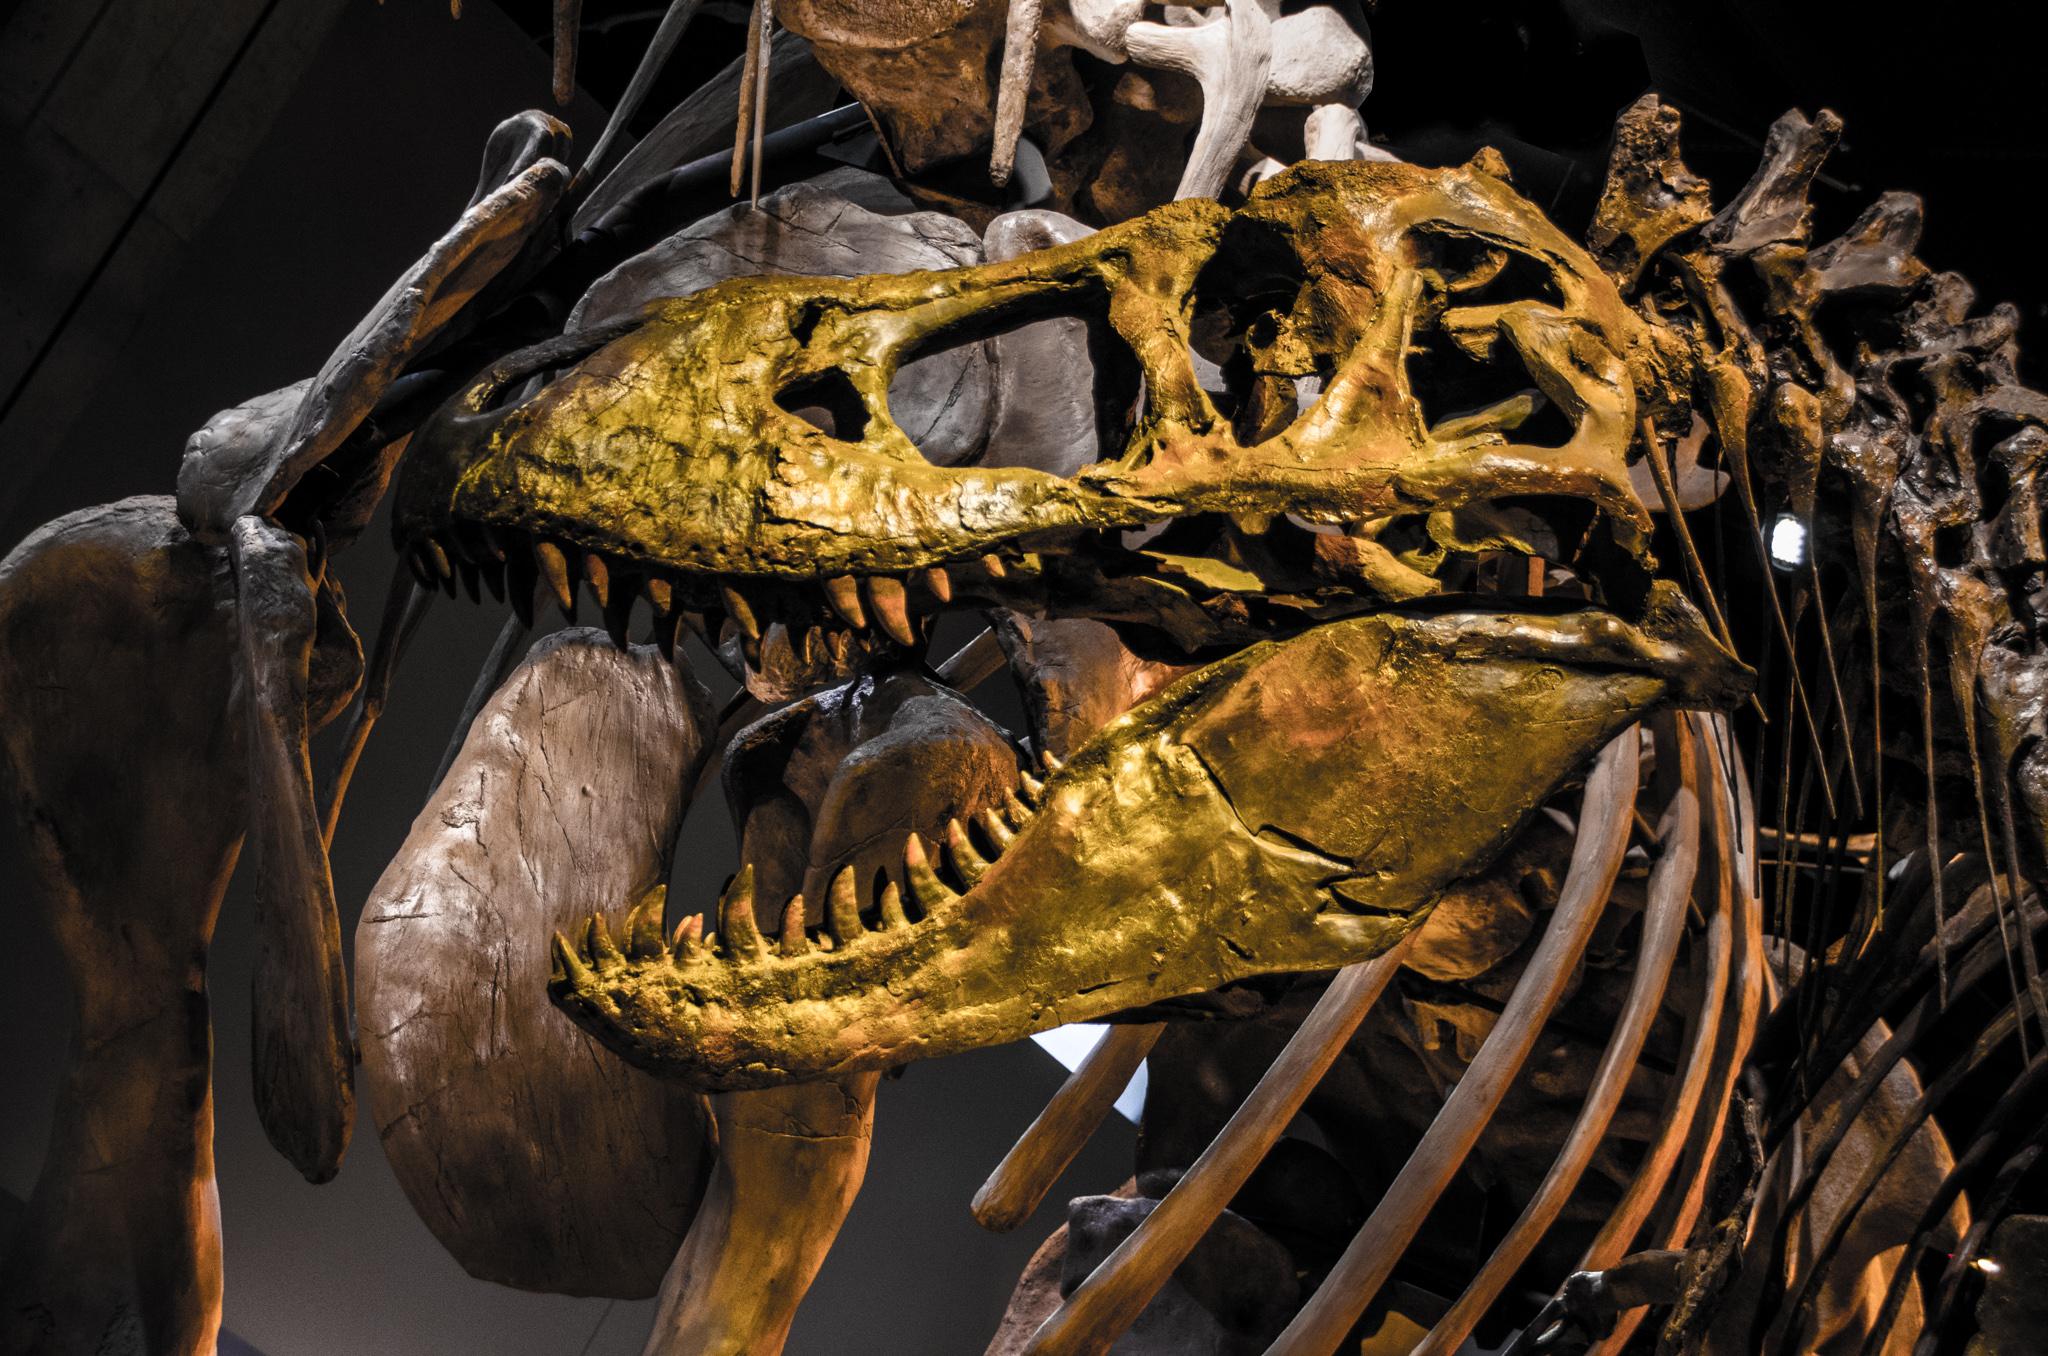 2015-02-09 - American Roadtrip Day 3 - Perot Museum Of Natural History - 045